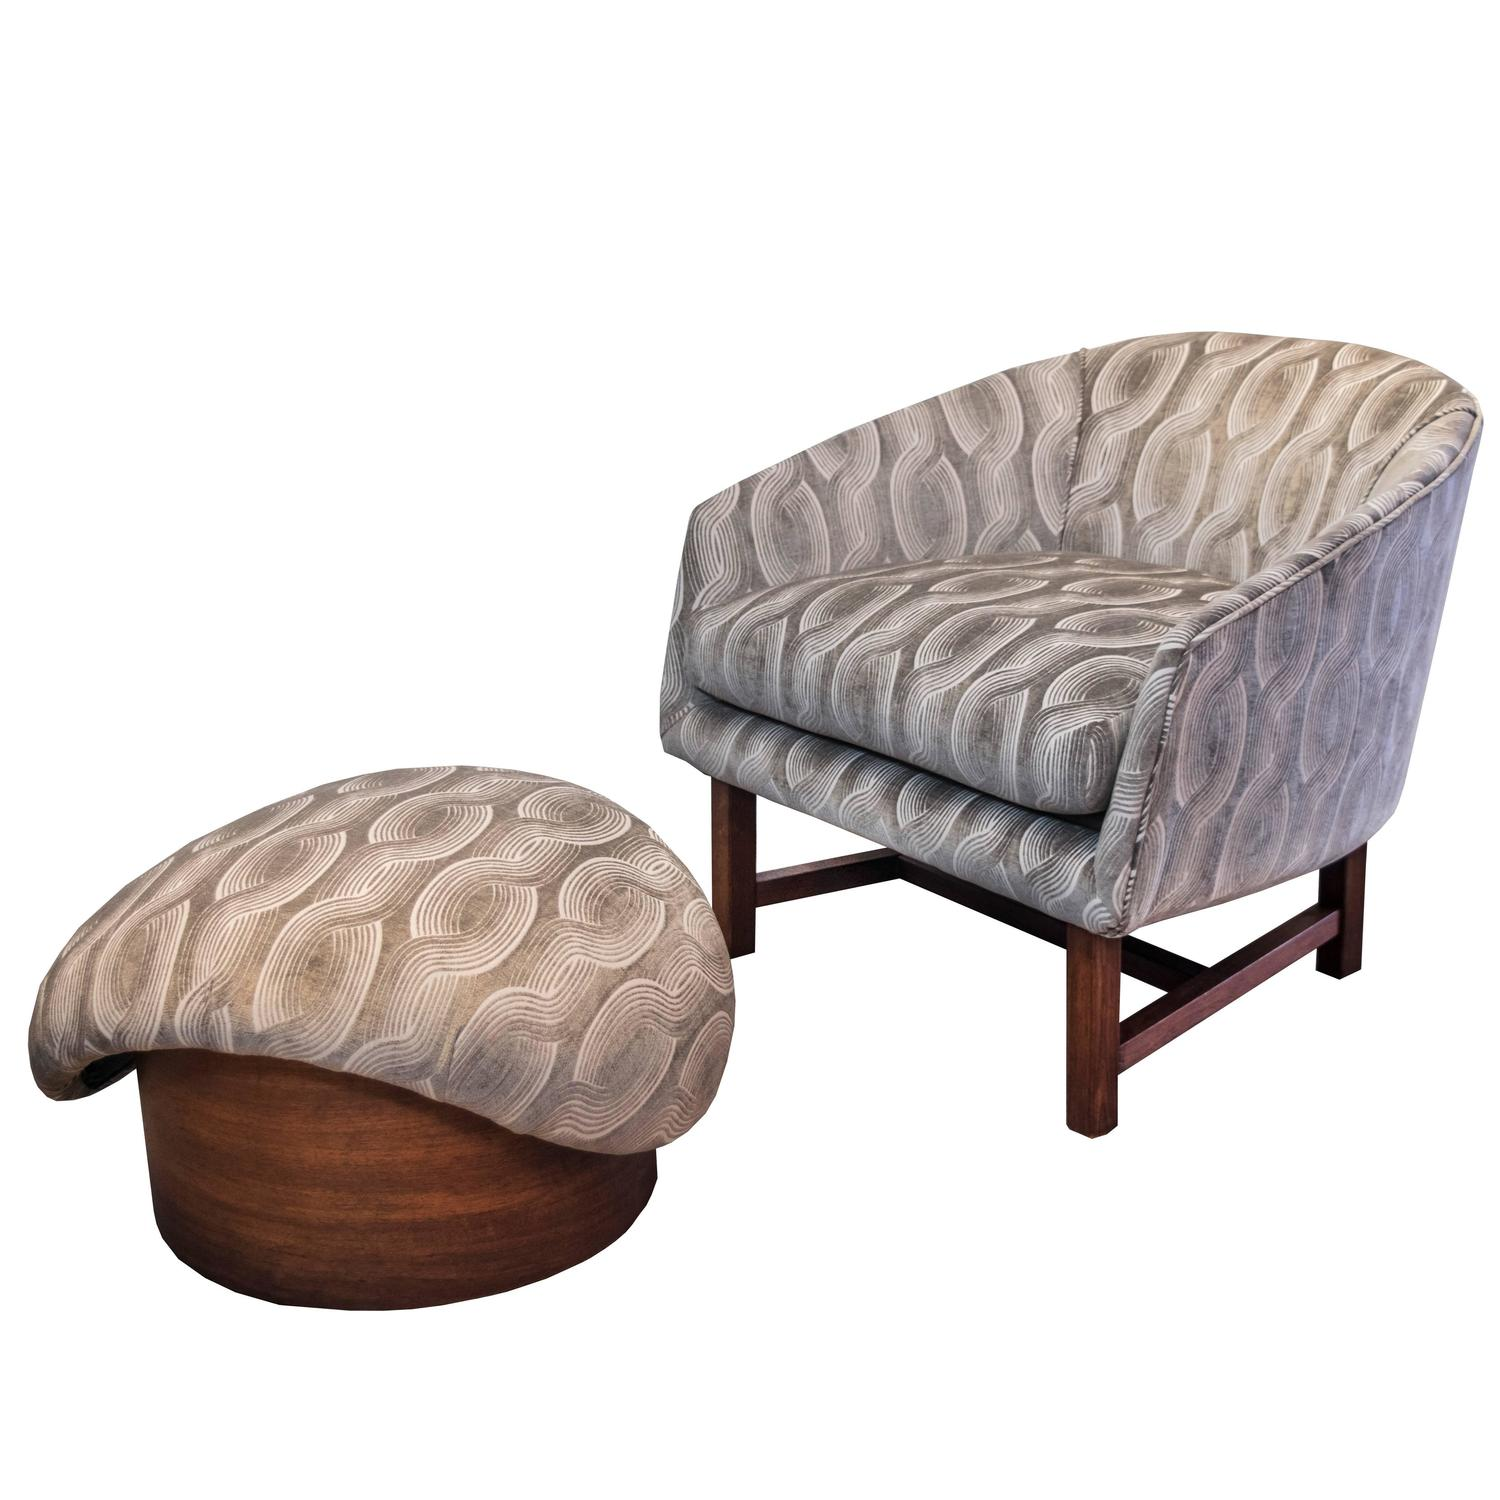 Mid Century Chair And Ottoman Mid Century Modern Reading Chair And Ottoman For Sale At